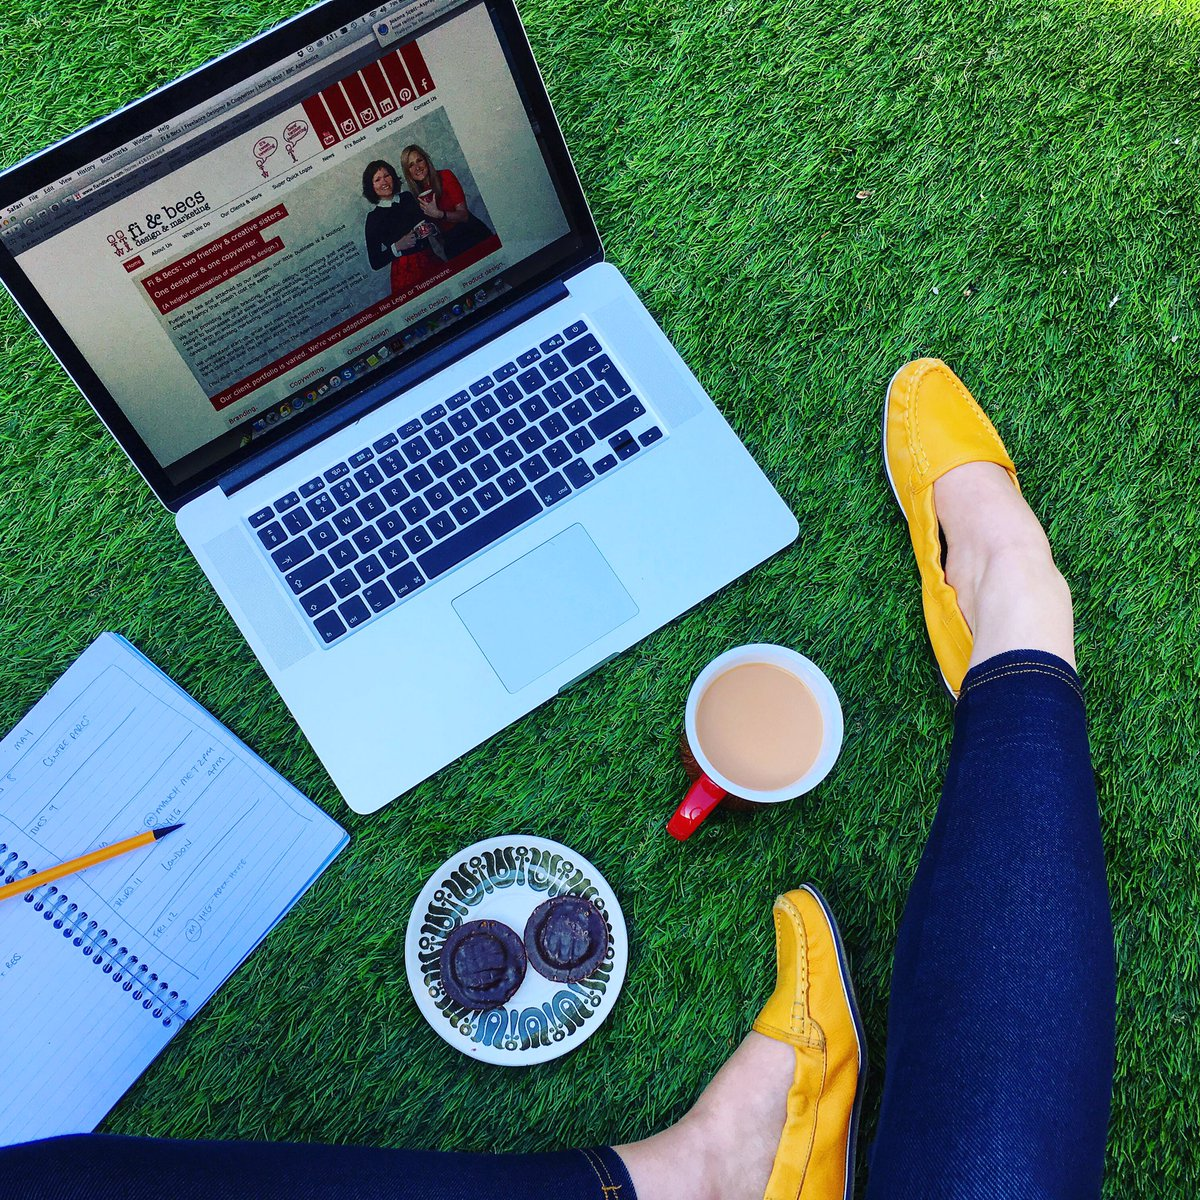 Becoming one with the artificial grass.  (Shoes @hushpuppies) #copywriting #workfromhome #amwriting